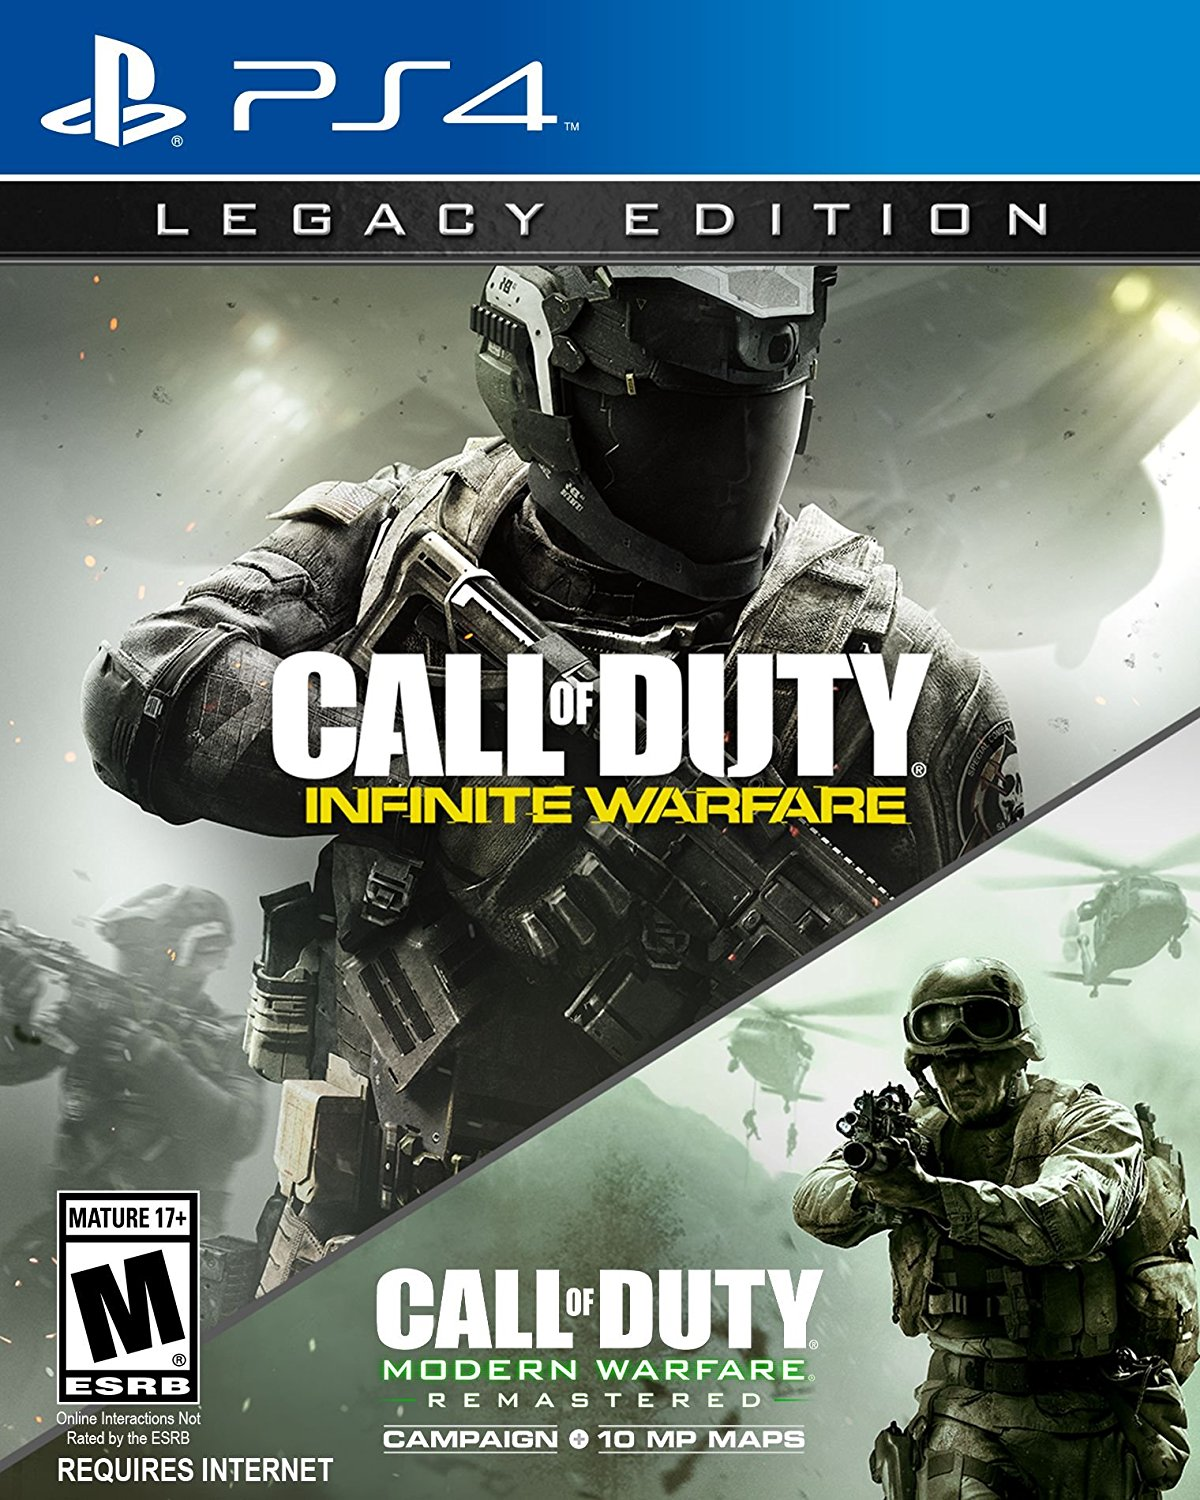 PS4 COD Call of Duty: Infinite Warfare LEGACY EDITION